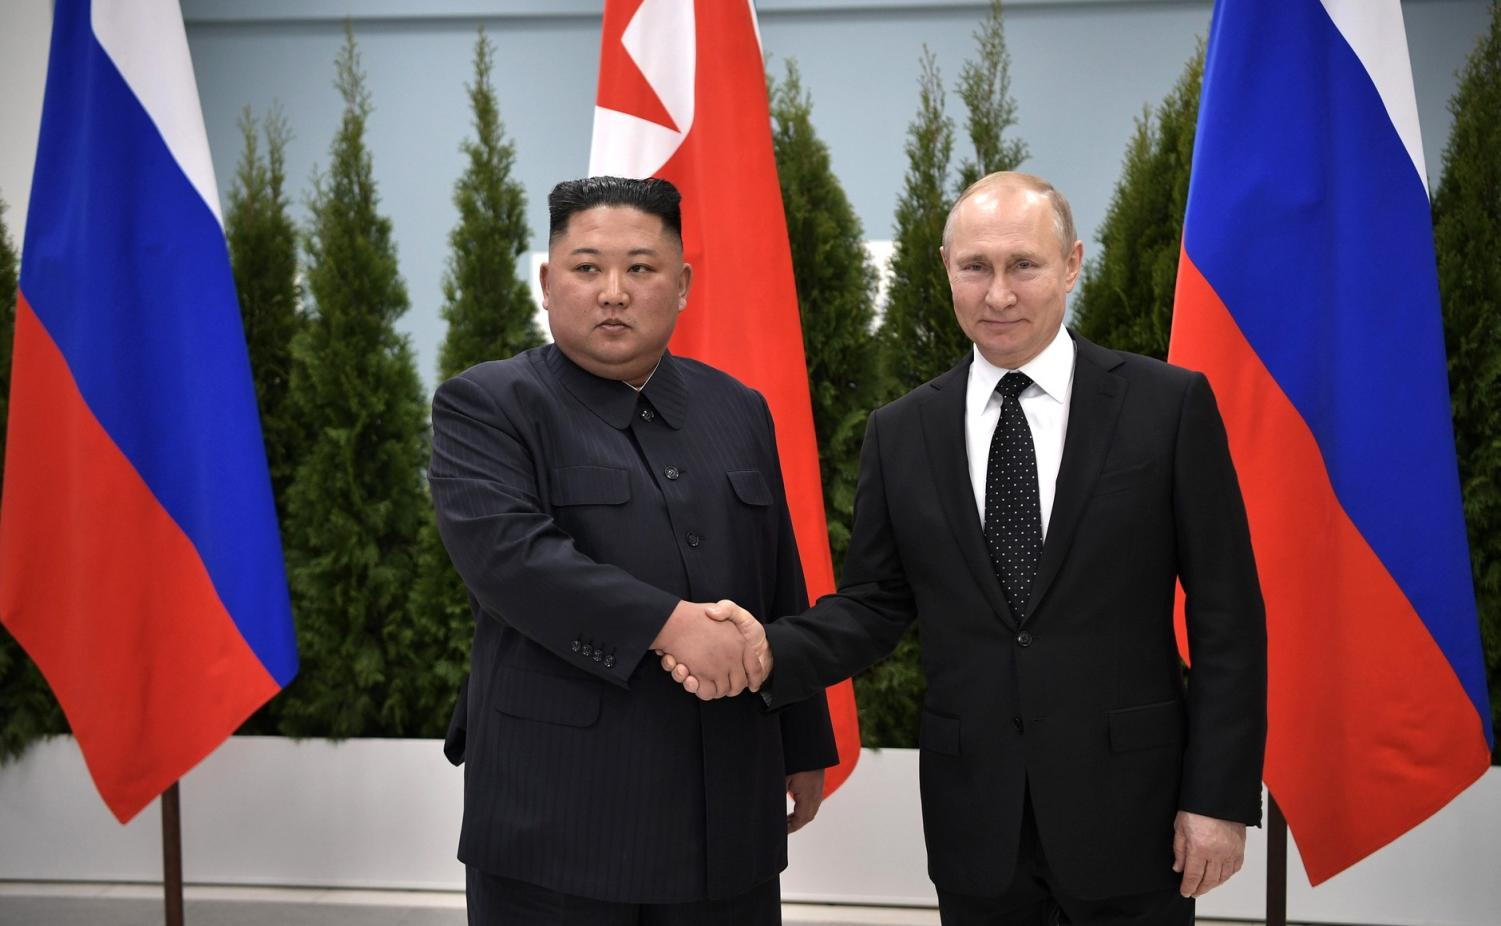 President Putin and Supreme Leader Kim shake hands during the talks on April 25th.